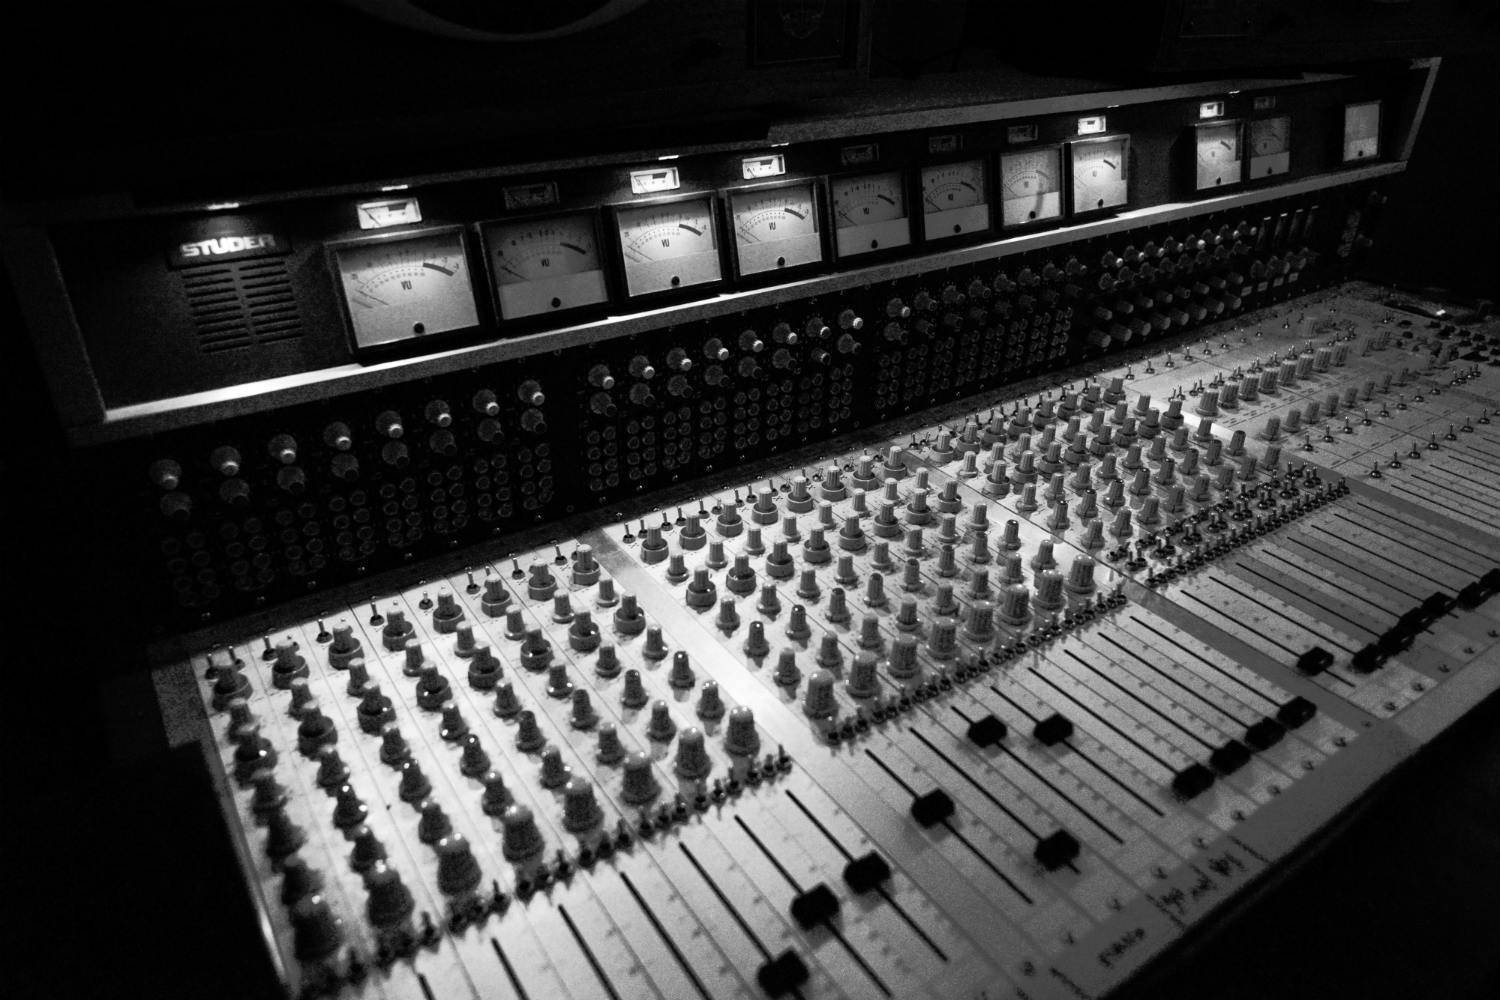 Jack Antonoff's XL Studios from his XL Recordings label, located in Soho, NYC, designed by WSDG. Control Room main console